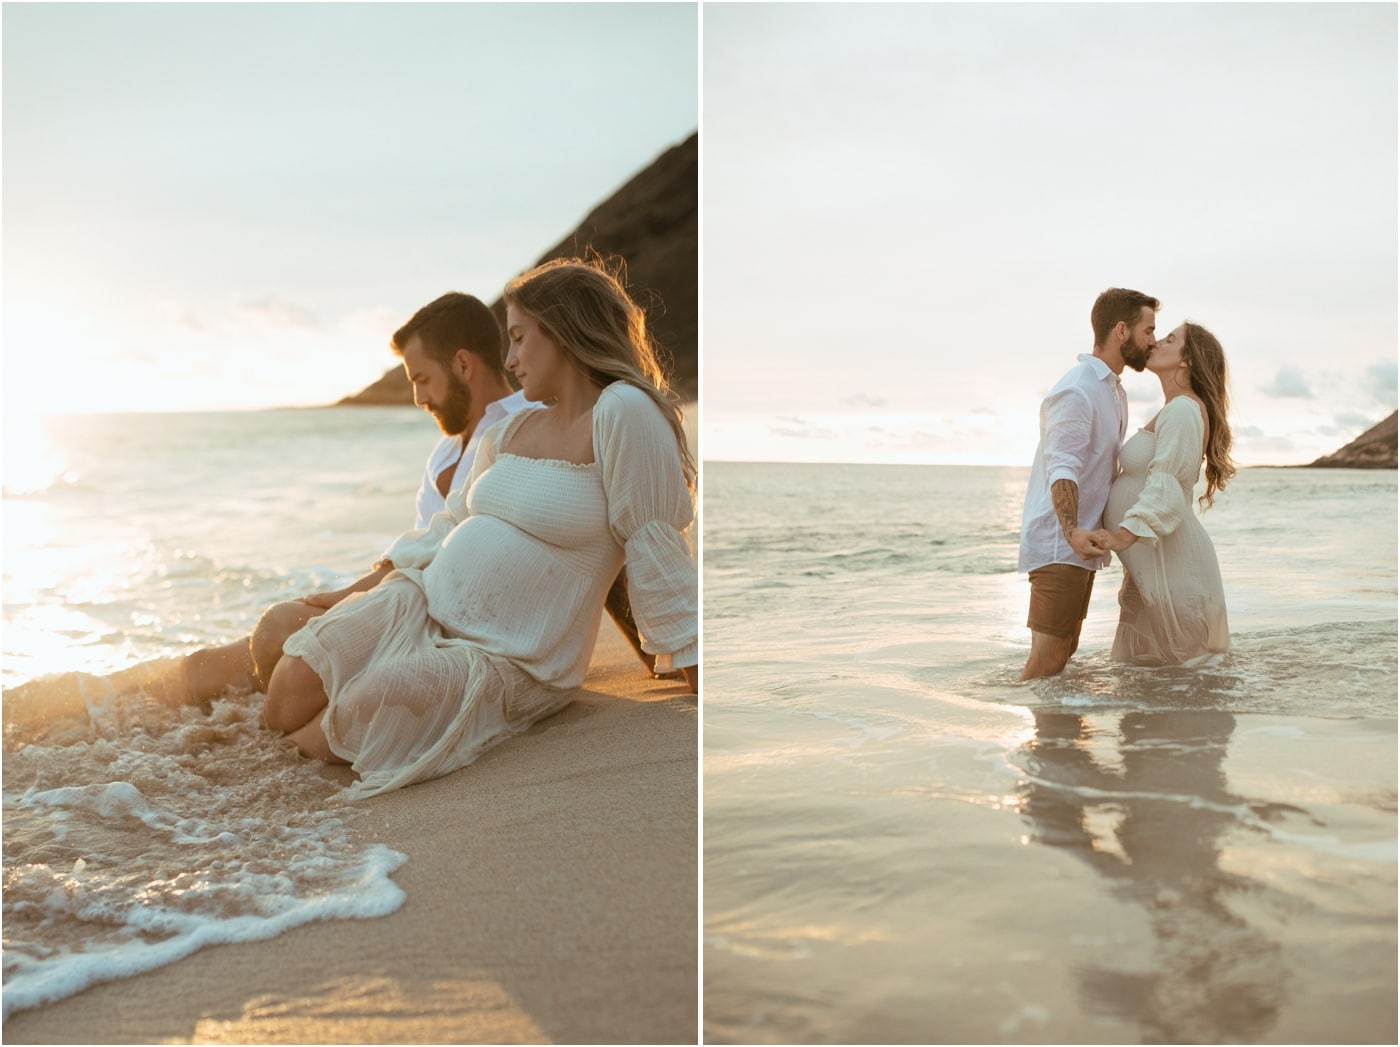 How to find the best location for your adventure Elopement session